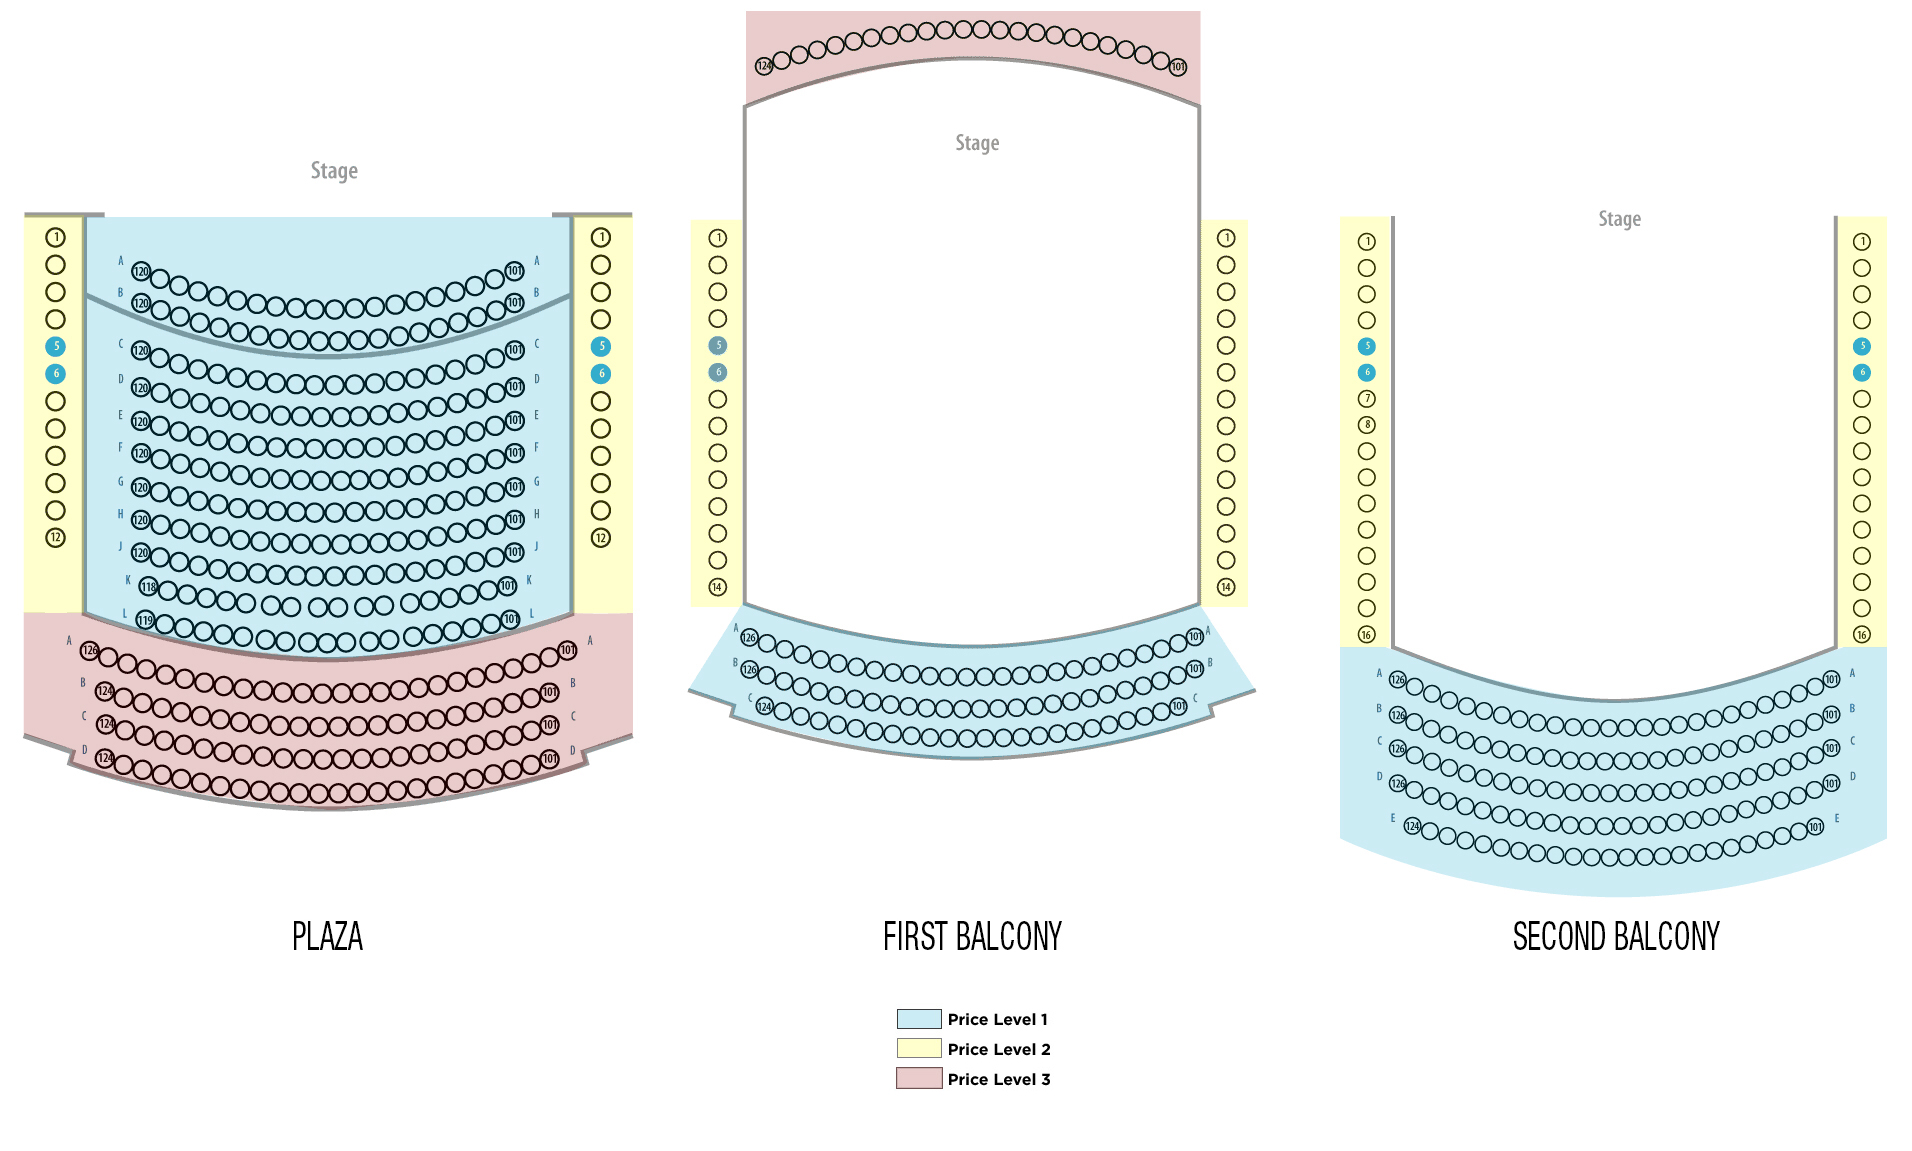 Seating charts kimmel perelman also center theater philadelphia tickets schedule rh goldstar